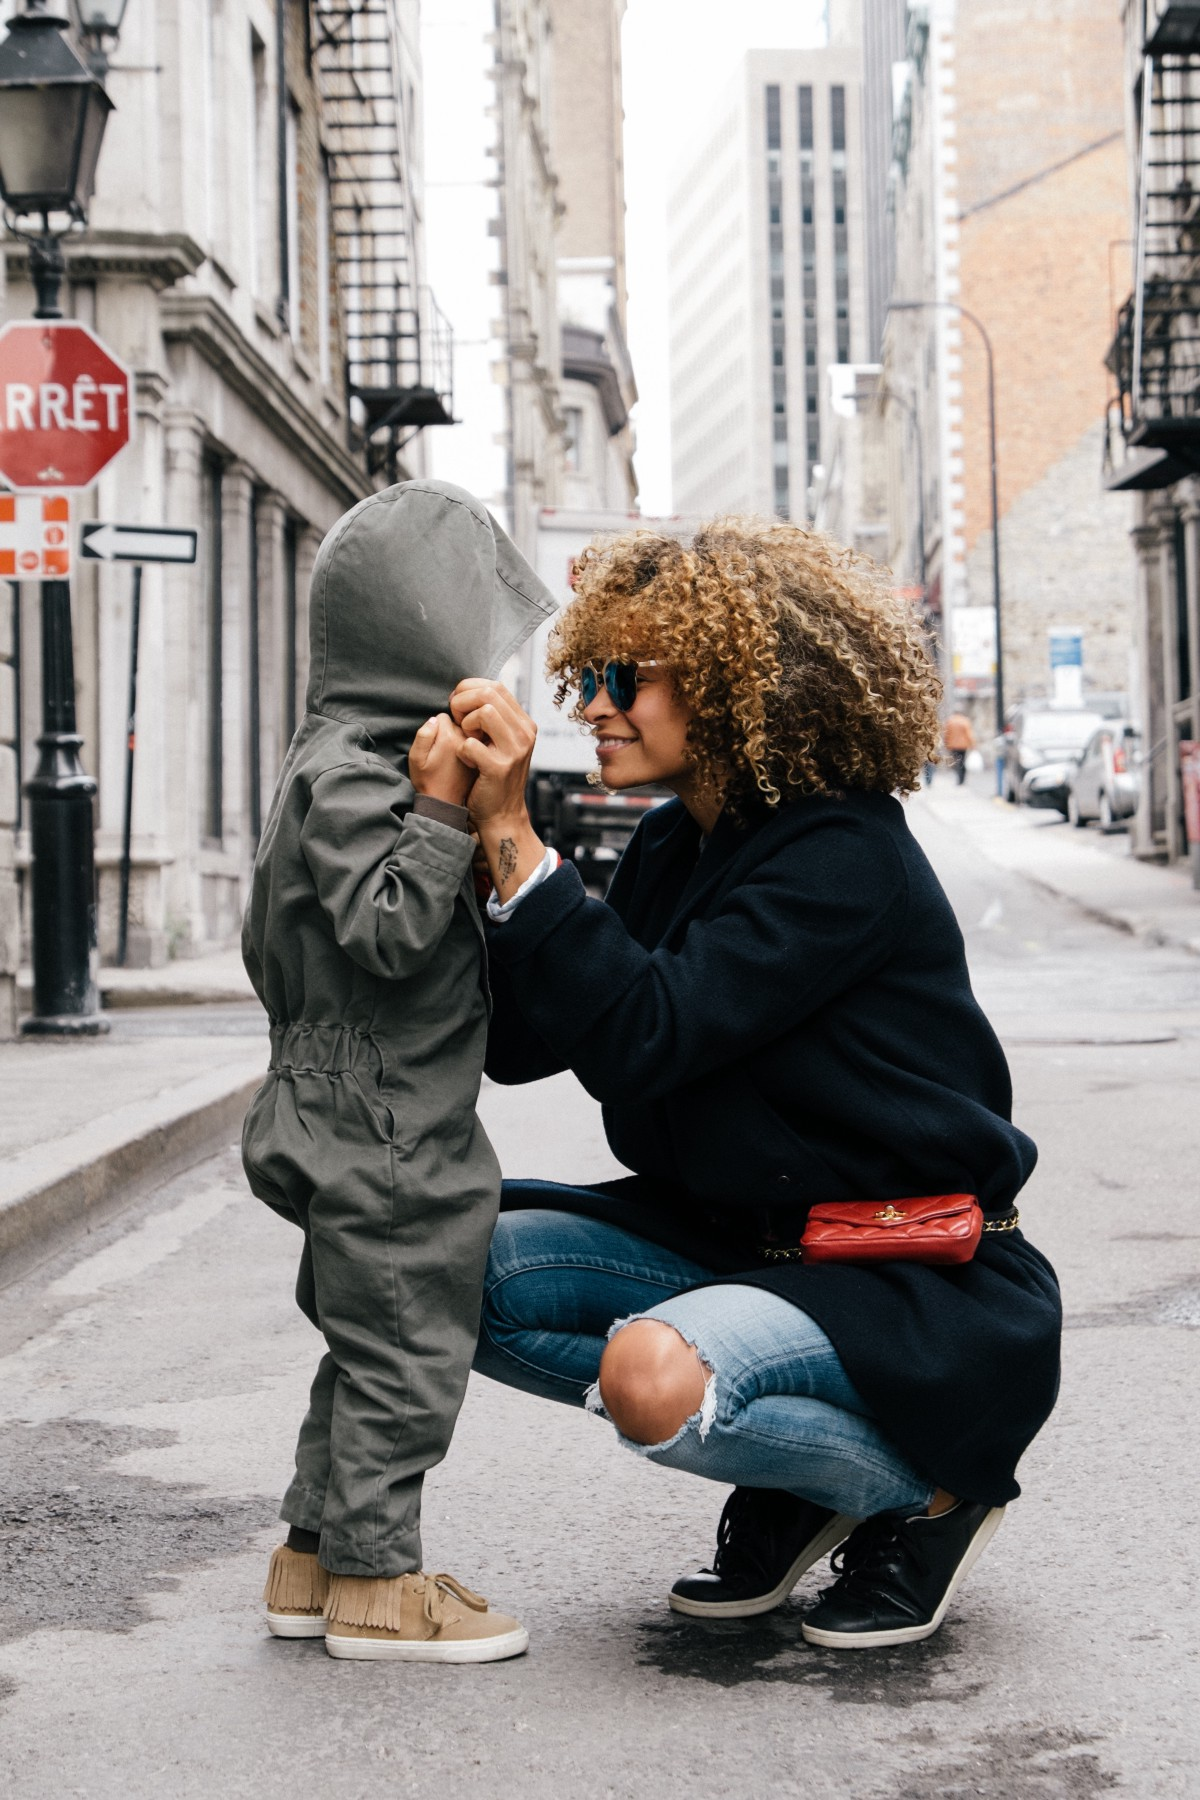 A love letter to my daughter - Literally Literary - Medium